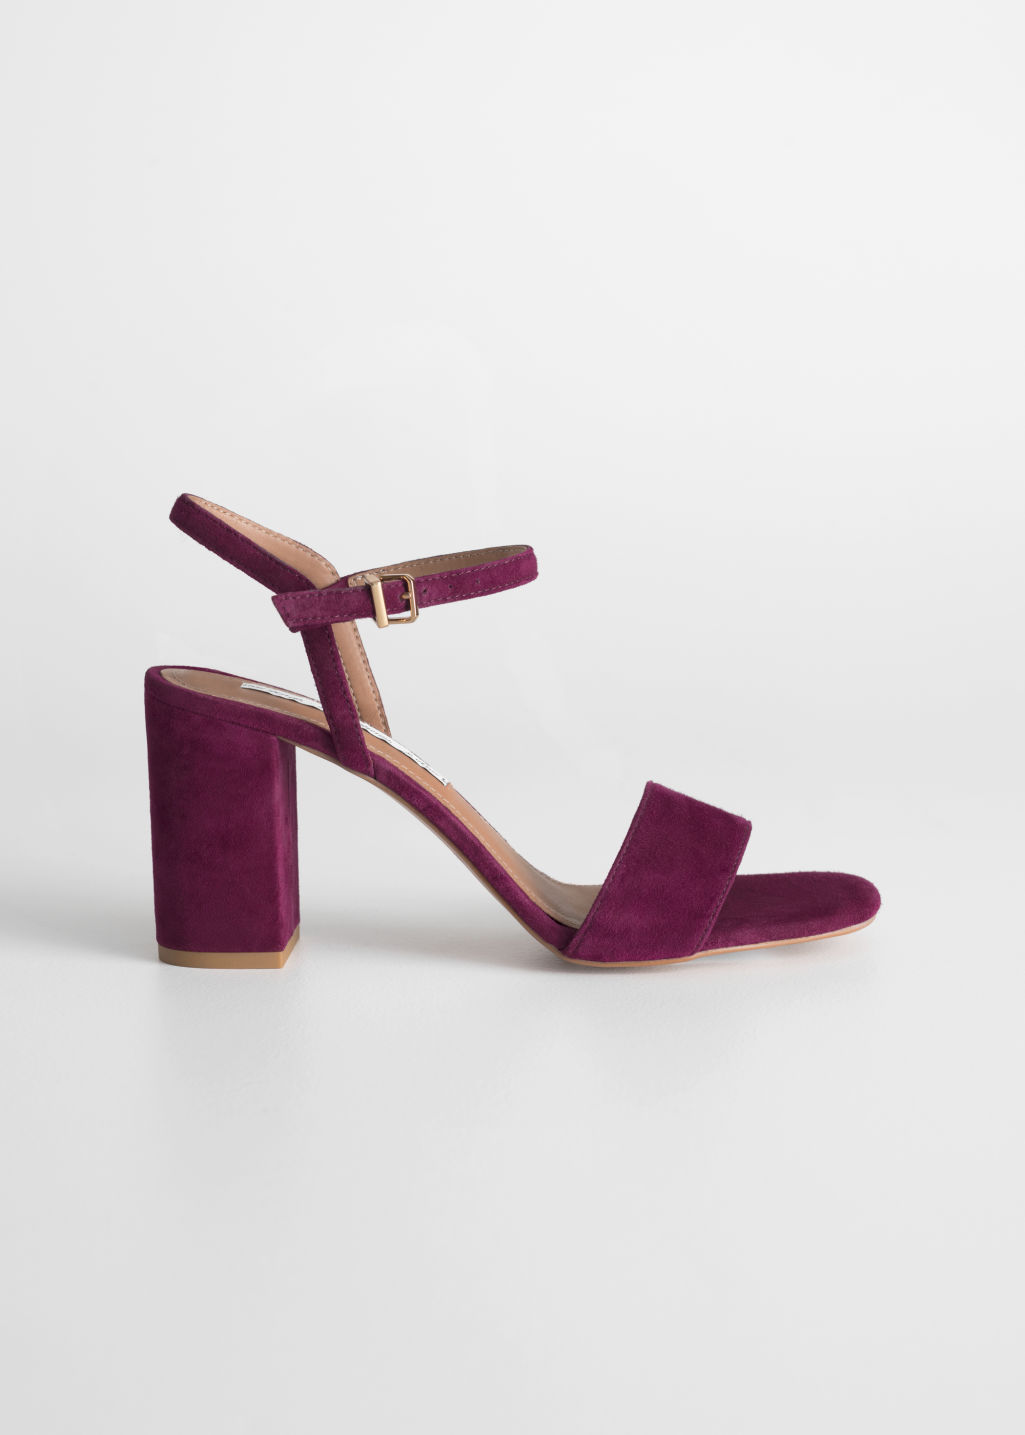 & OTHER STORIES Strappy Block Heel Sandals WRRGa